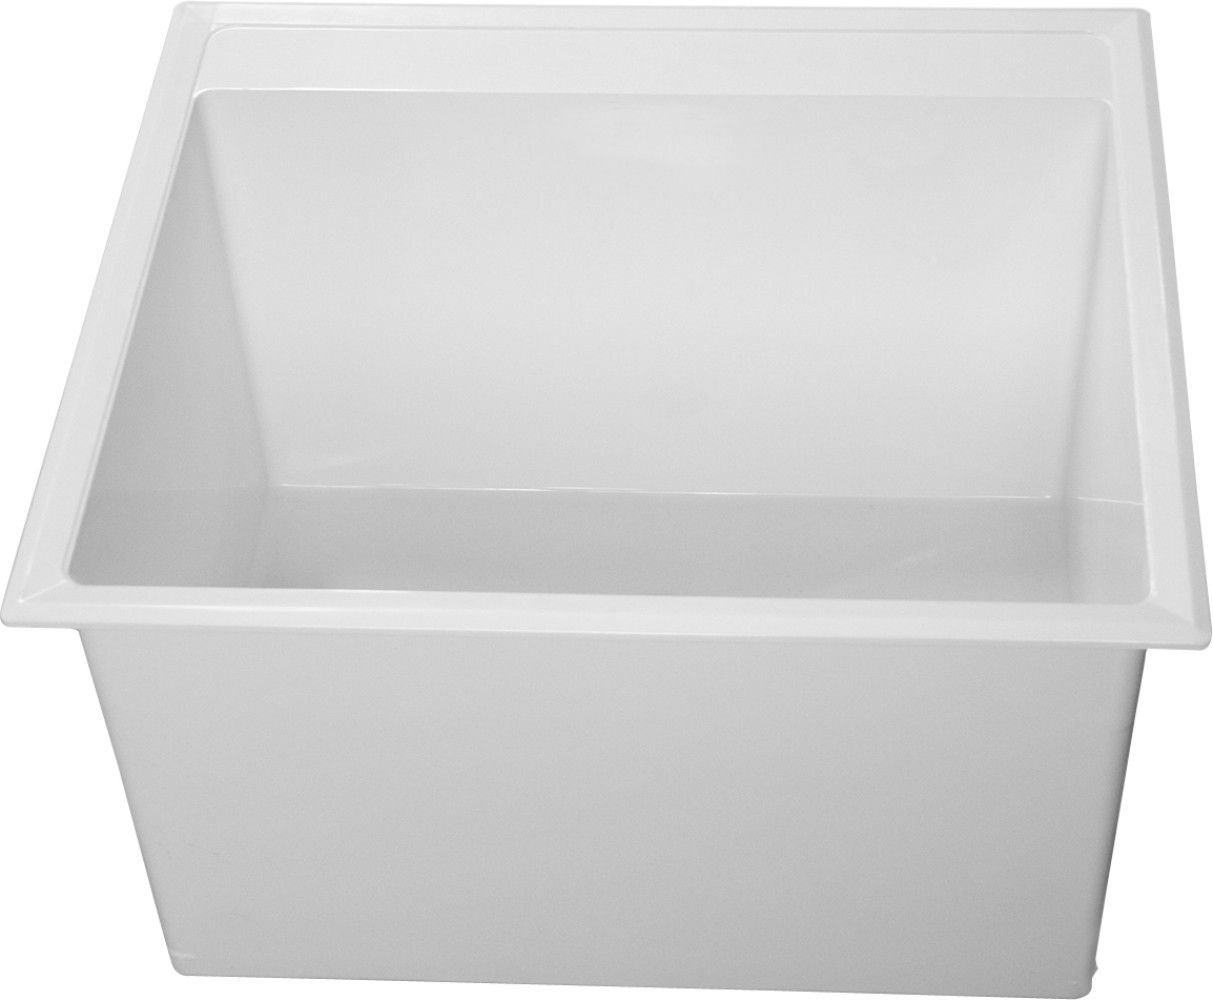 Fiat Residential Drop In Stone Laundry Sink Dl1100 White With